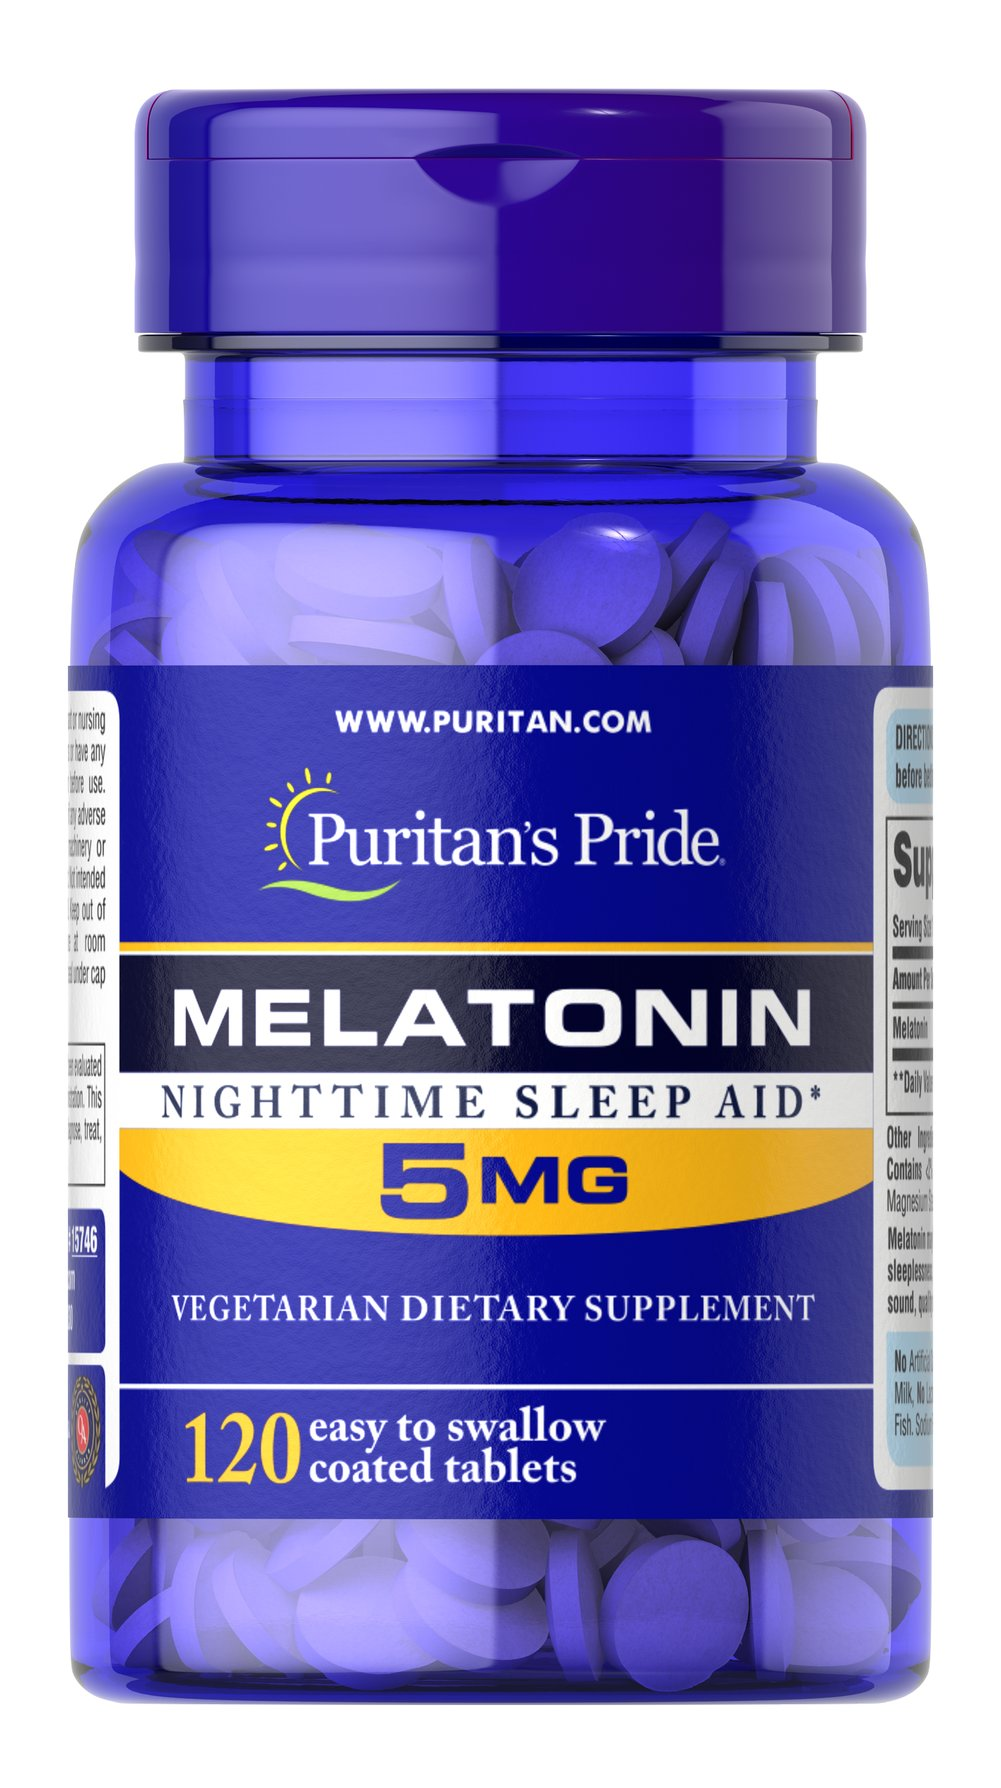 Melatonin 5 mg <p>Sometimes it's hard to unwind after a long day. That's when it's time for Melatonin, a hormone naturally produced in the body that is closely involved in the natural sleep cycle.** It's a terrific choice if you experience occasional sleeplessness or jet lag, or if you want to improve your quality of rest.**  Melatonin helps you fall asleep quickly and stay asleep longer**<br /></p> 120 Tablets 5 mg $13.39